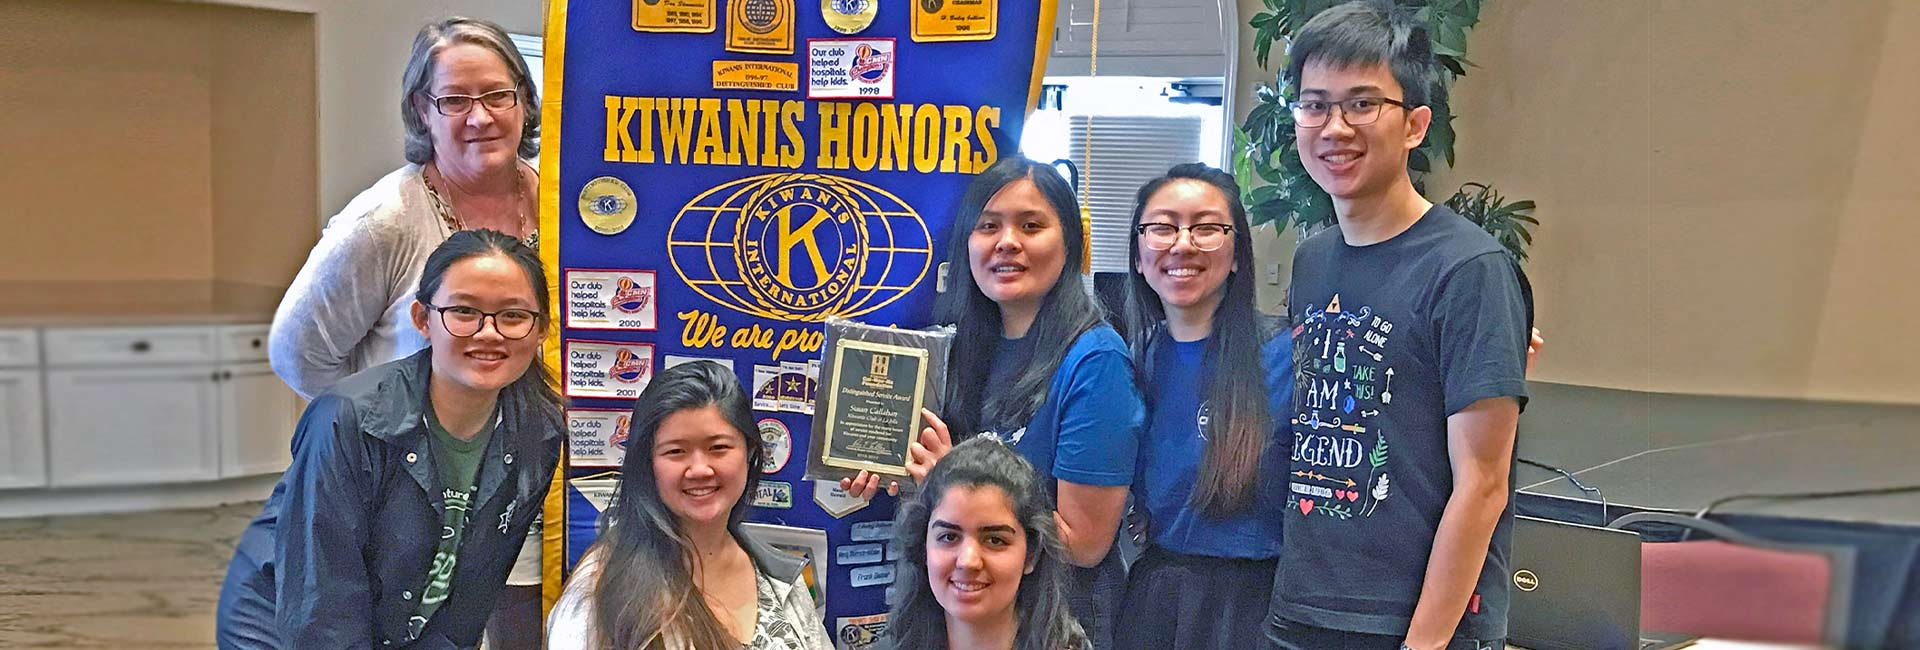 Kiwanis Club of La Jolla